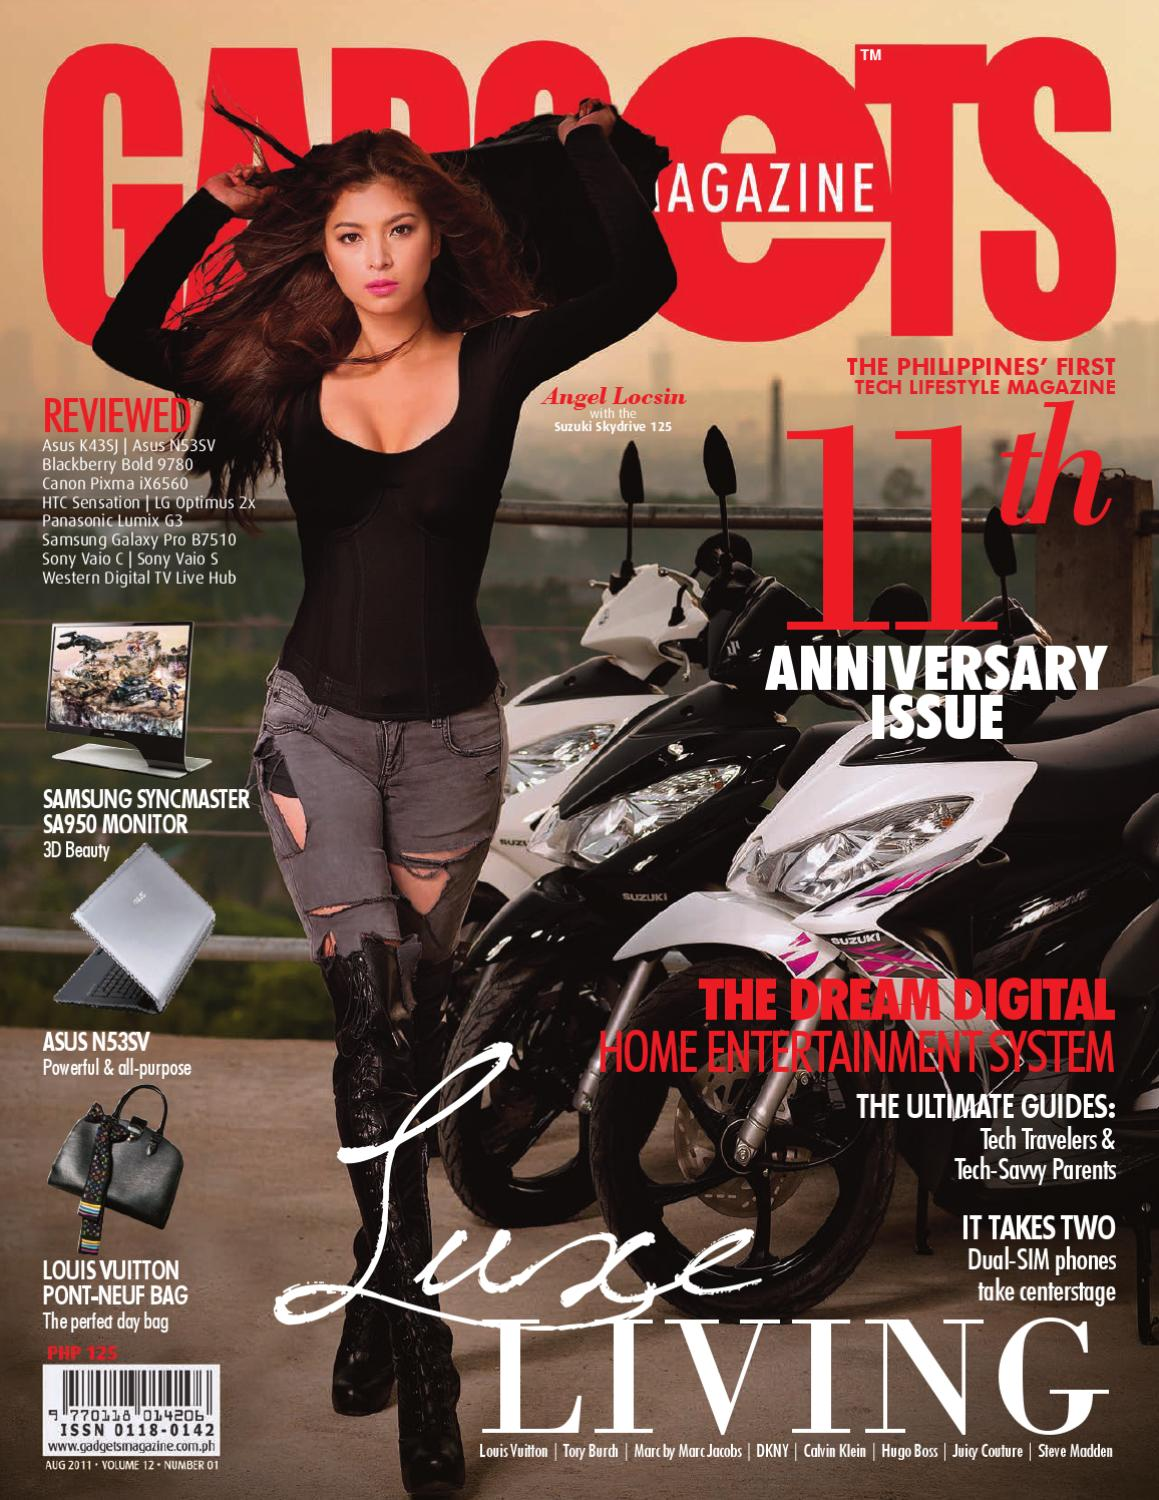 Gadgets Magazine Vol  12 No  01 (August 2011) by Gadgets